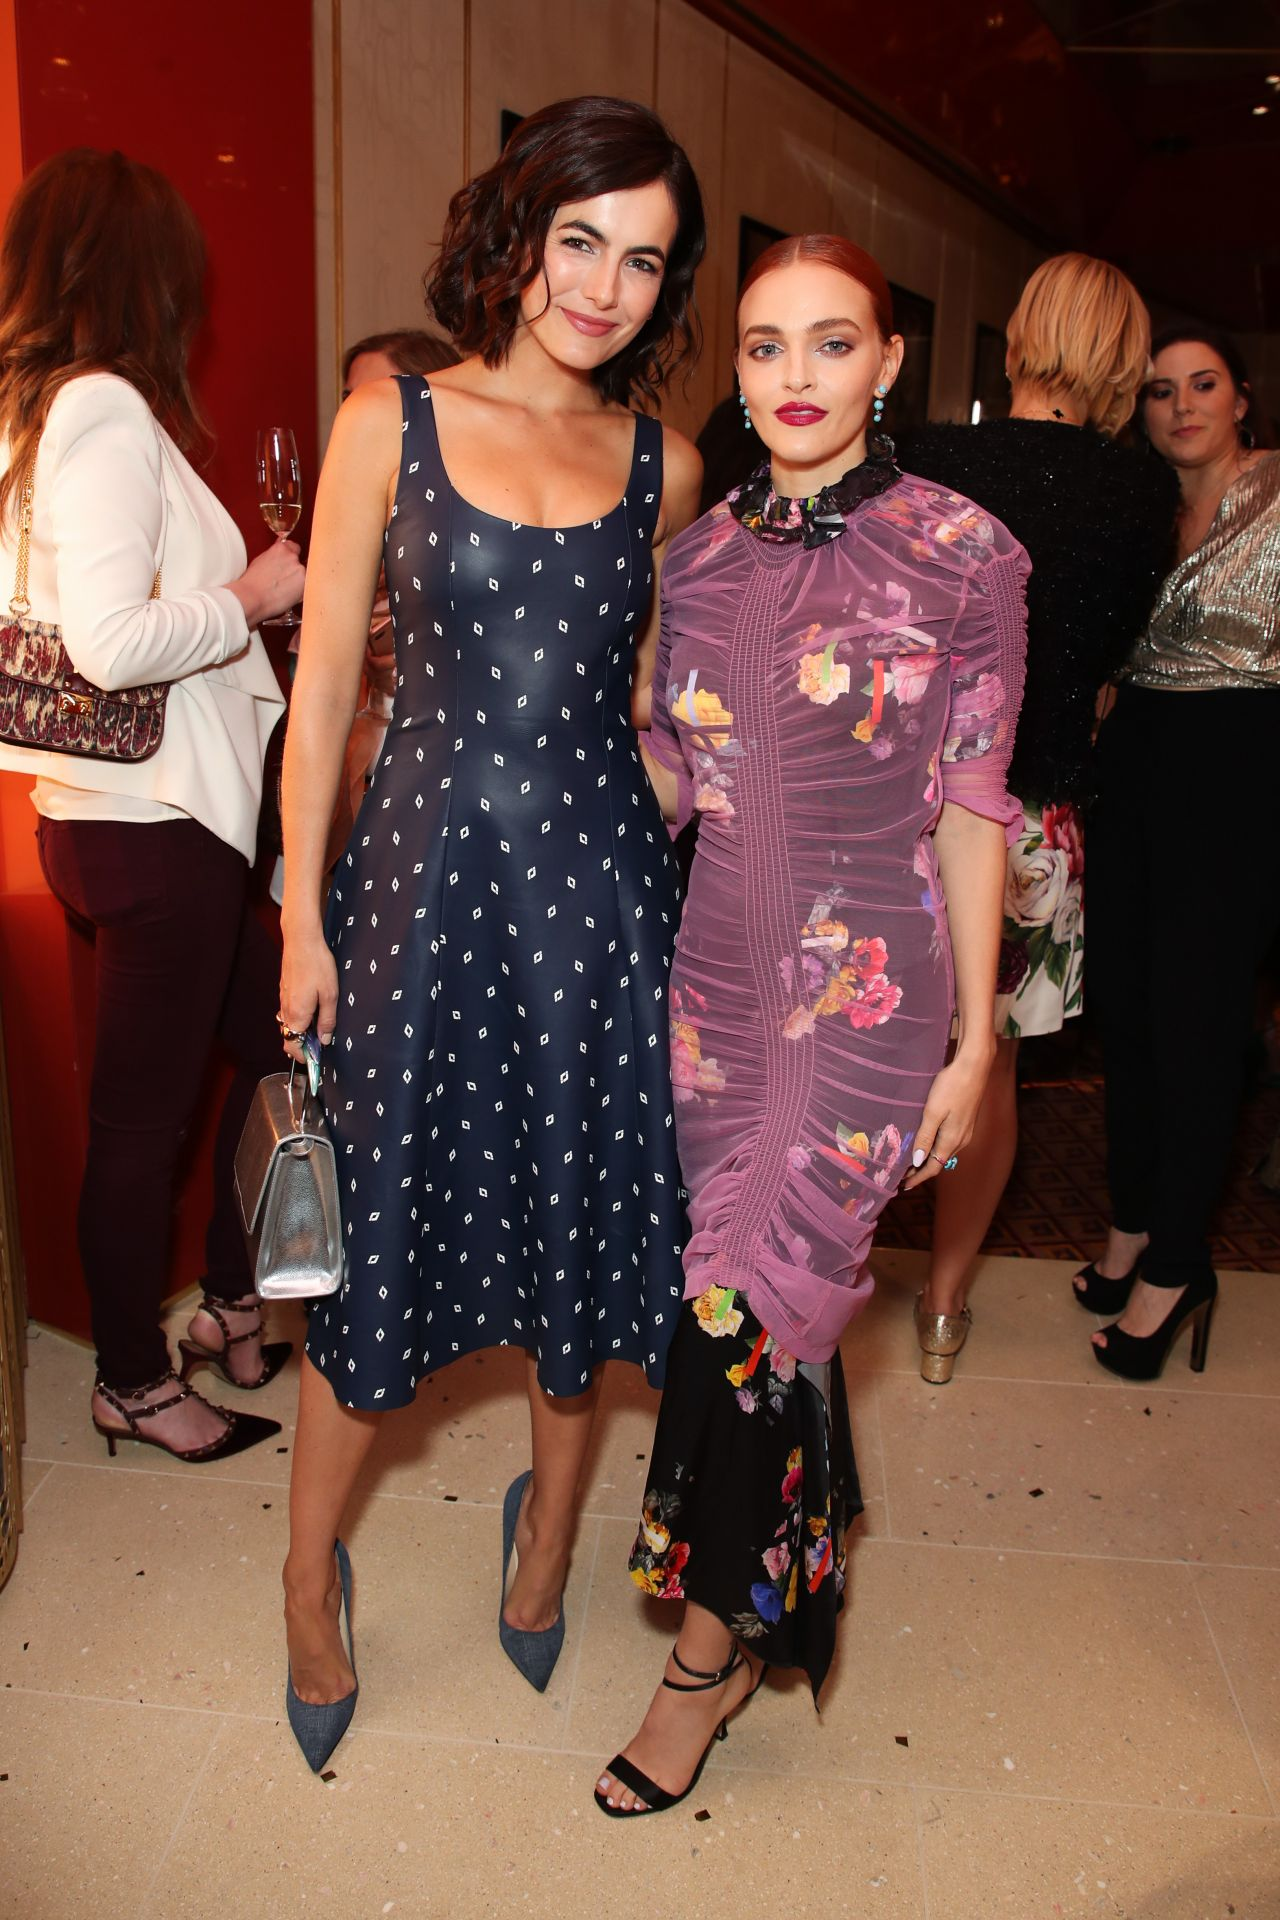 https://celebmafia.com/wp-content/uploads/2018/10/camilla-belle-and-madeline-brewer-pomellato-beverly-hills-boutique-party-10-16-2018-6.jpg